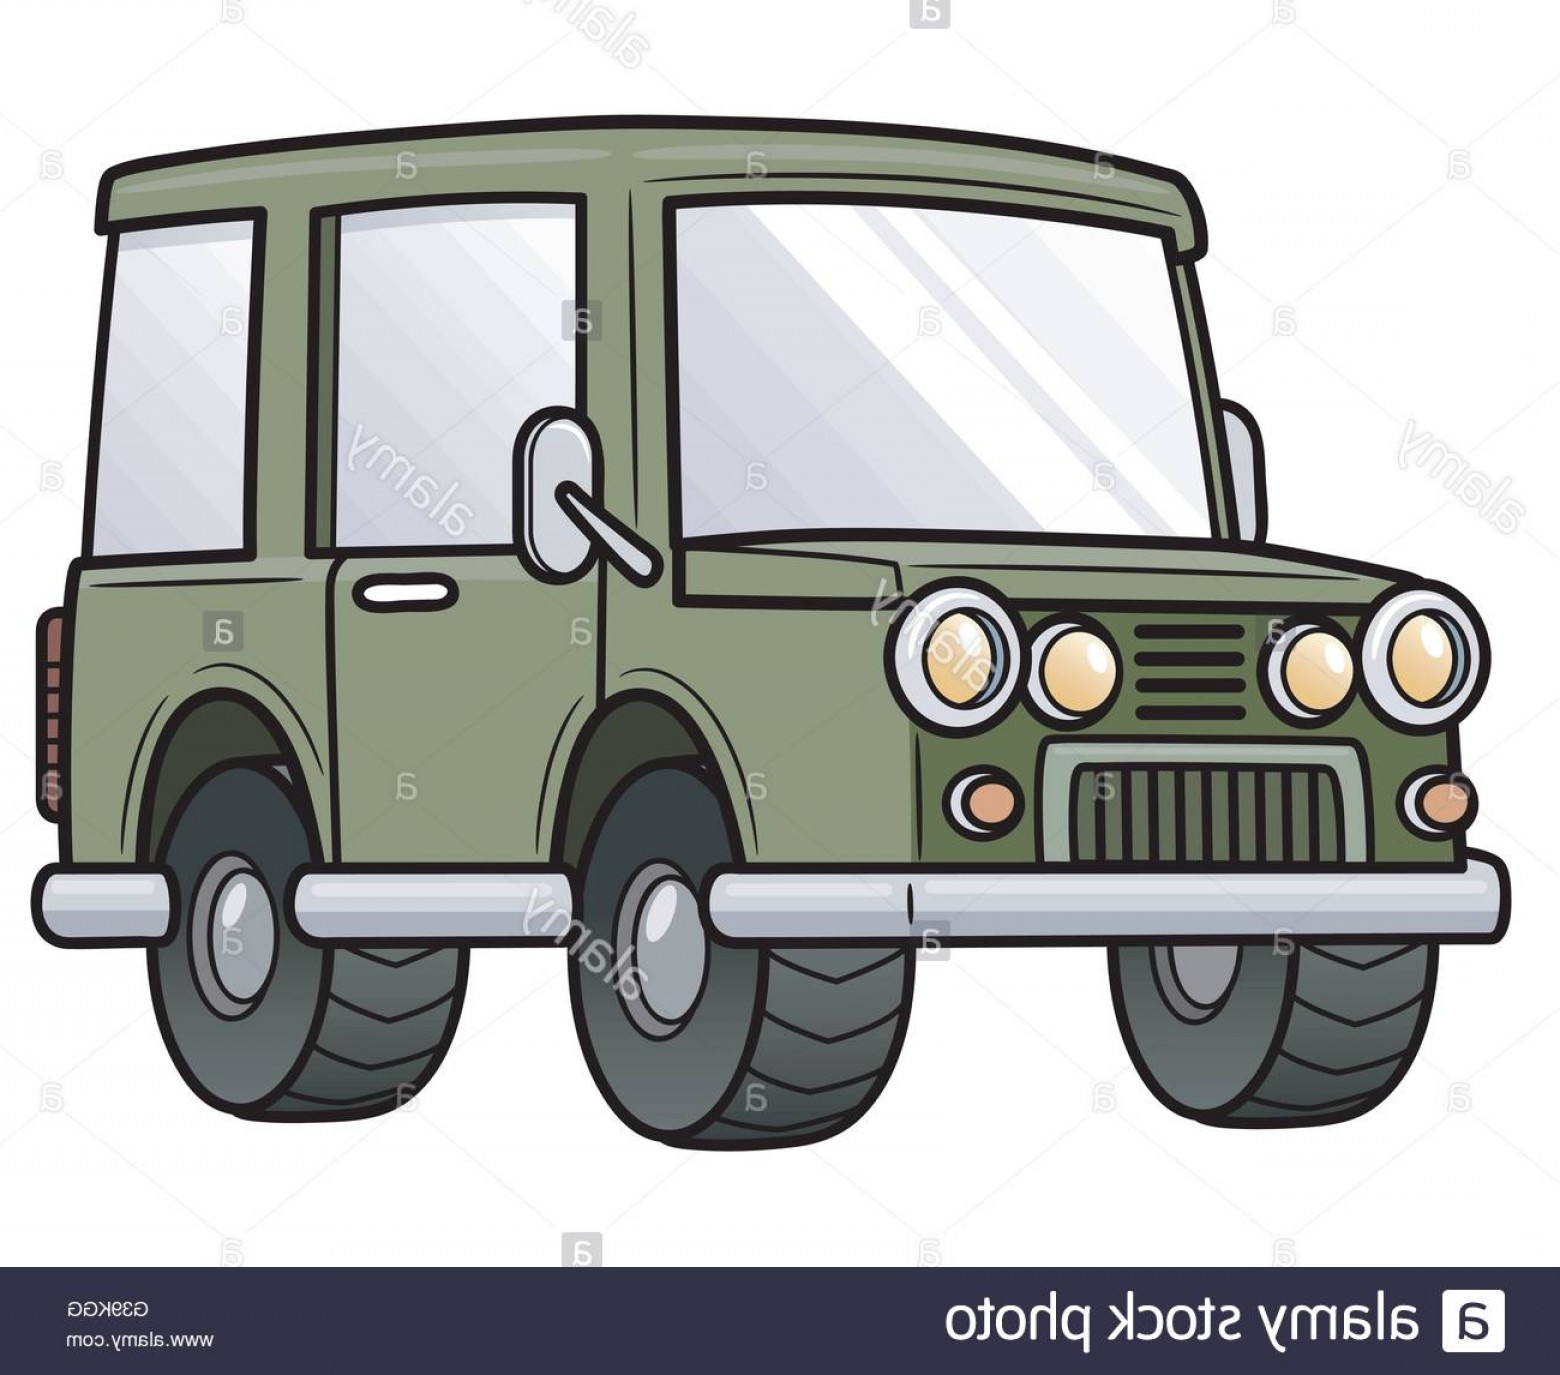 Jeep Tire Vector: Stock Photo Vector Illustration Of Cartoon Jeep